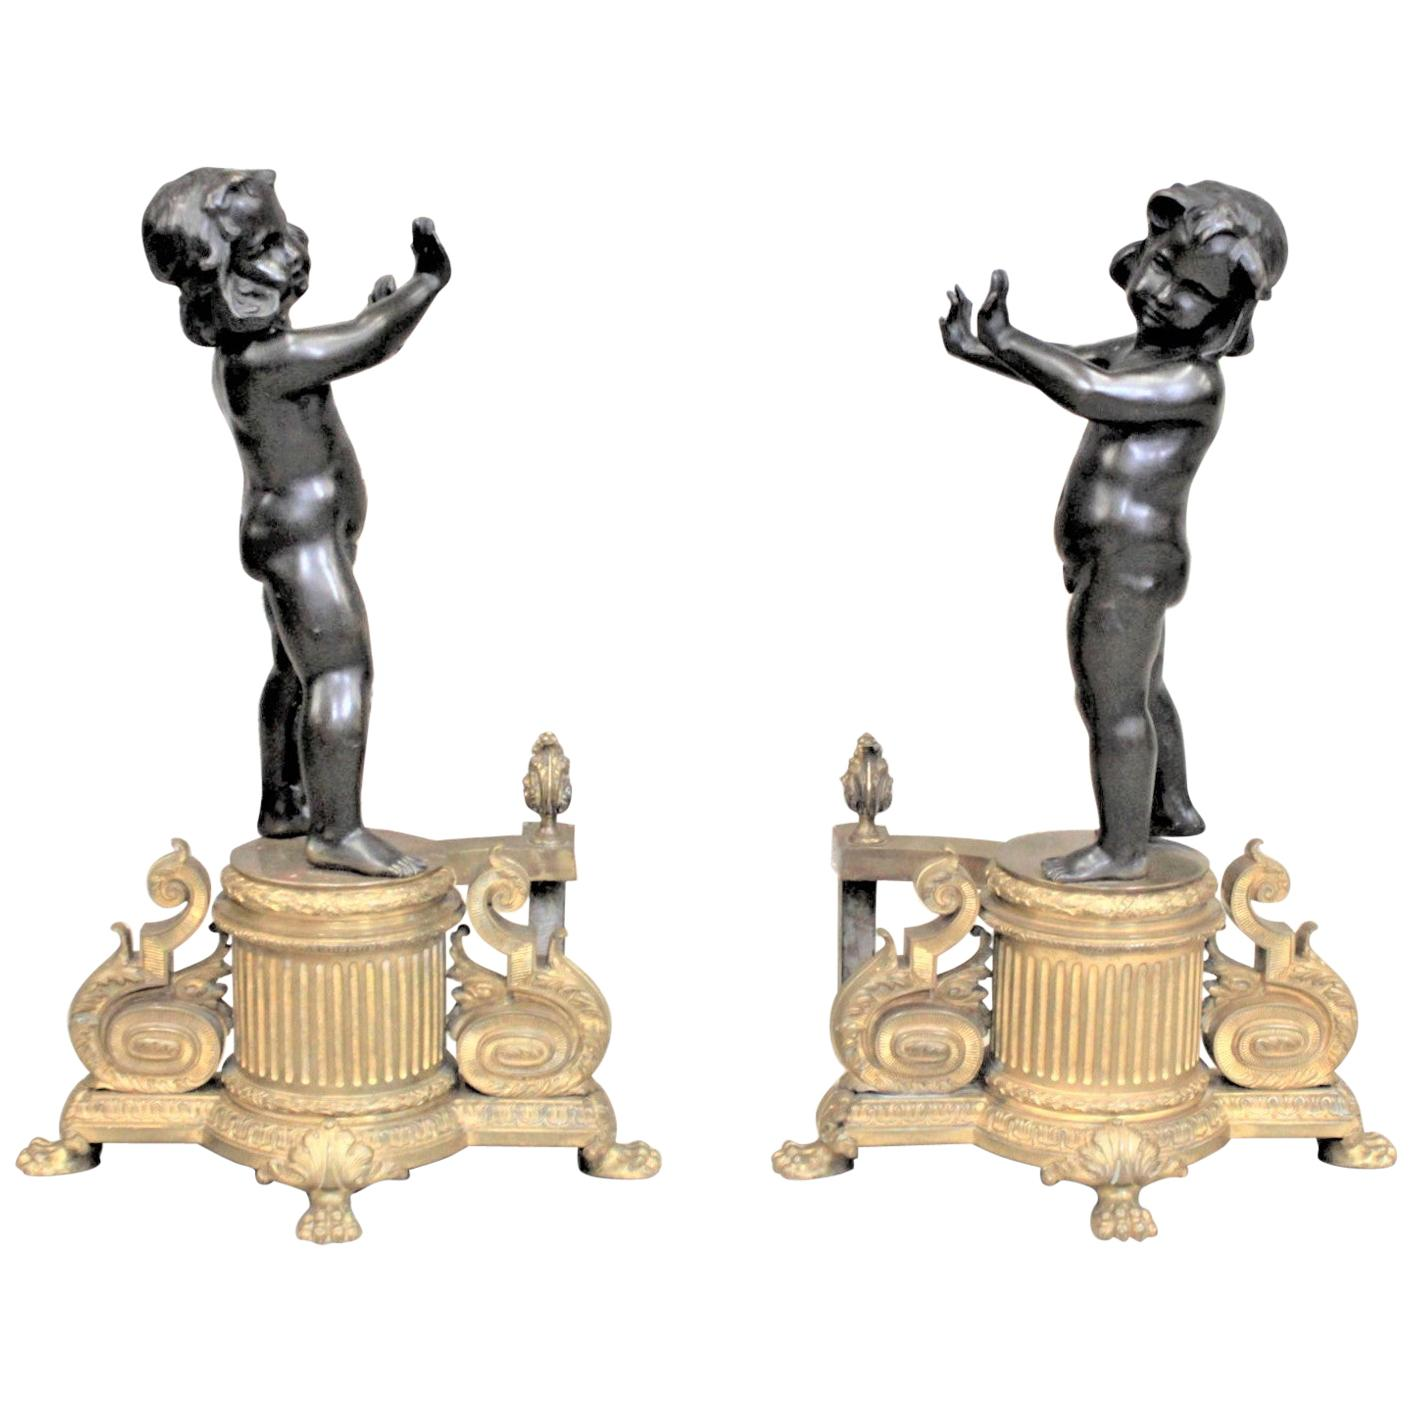 Pair of Ornate French Patinated and Gilt Bronze Figural Chenets or Andirons